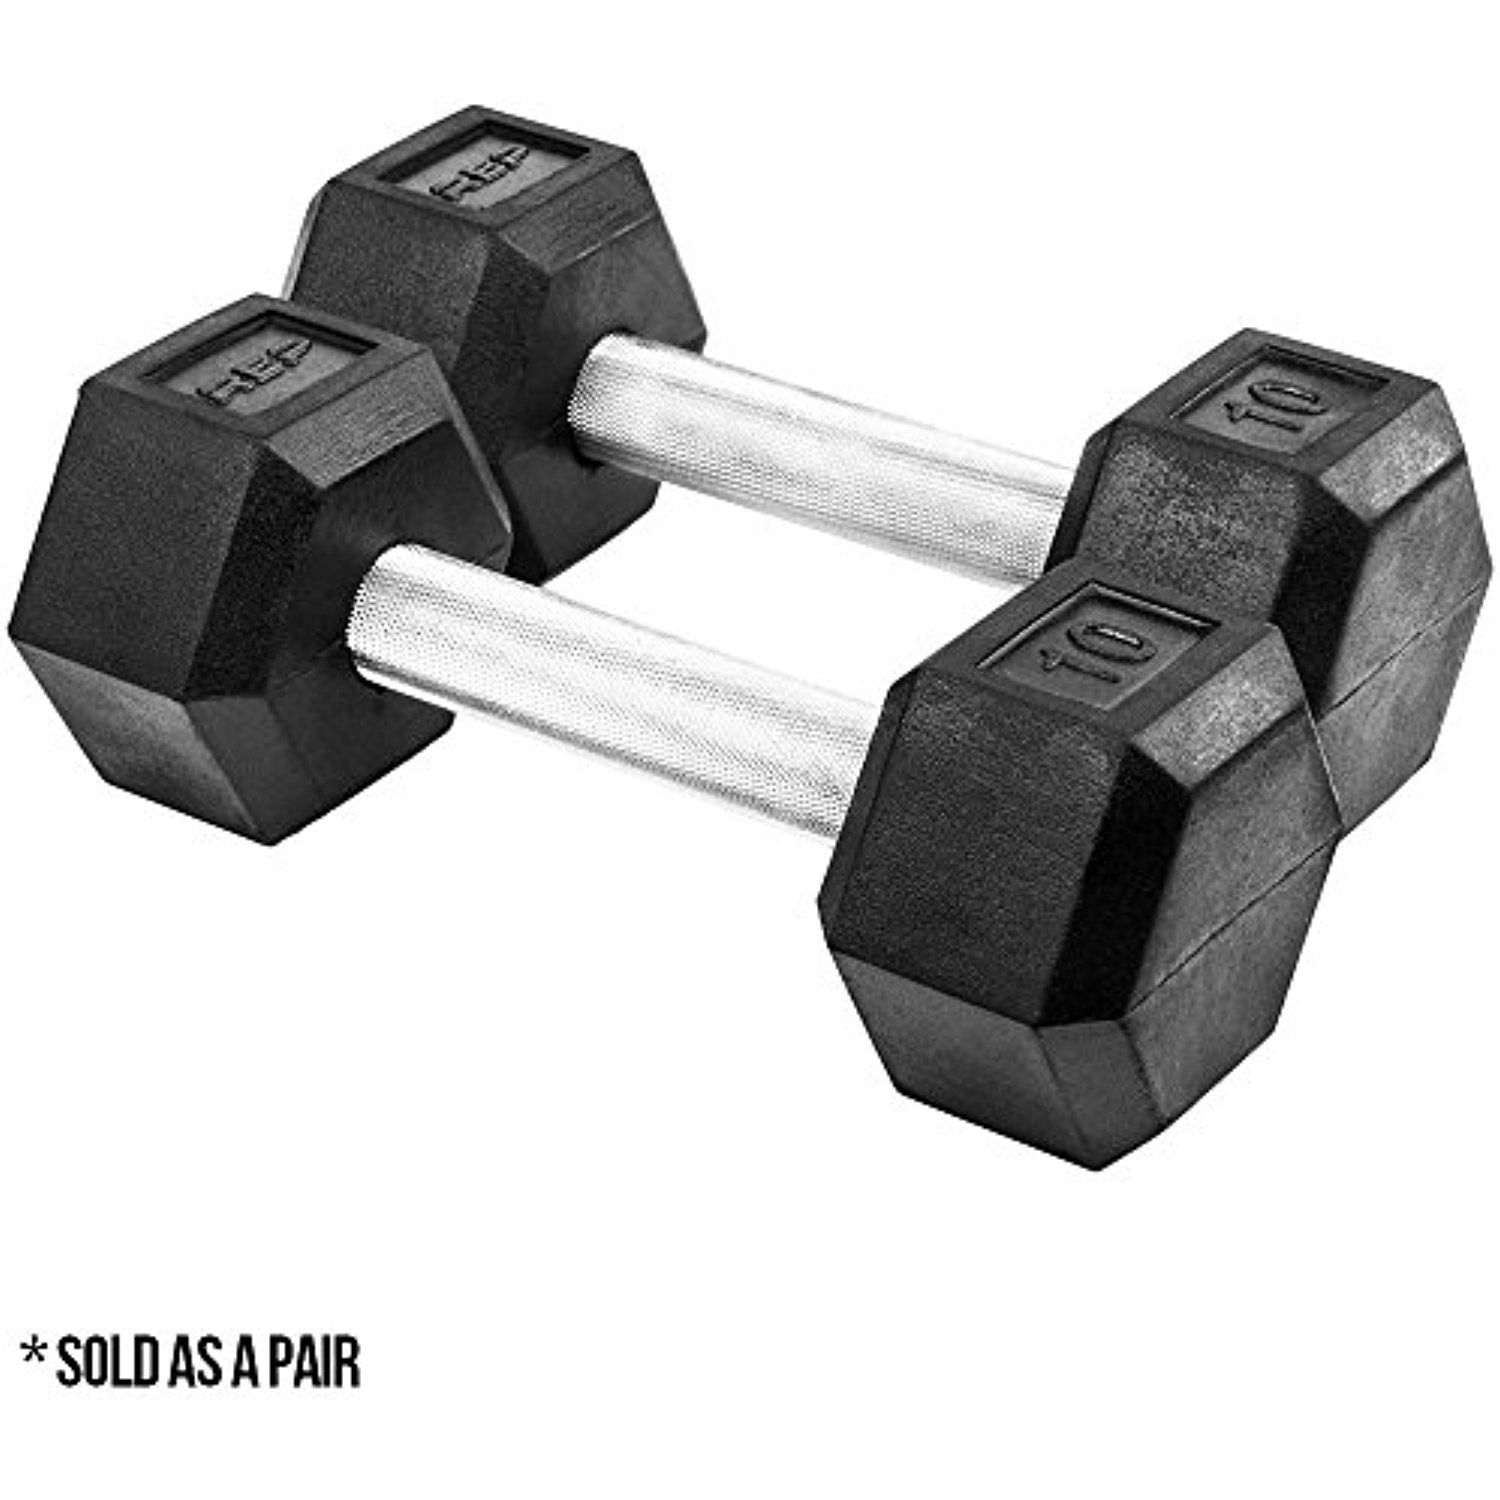 Rep Rubber Hex Dumbbells, Superior Quality with Low Odor